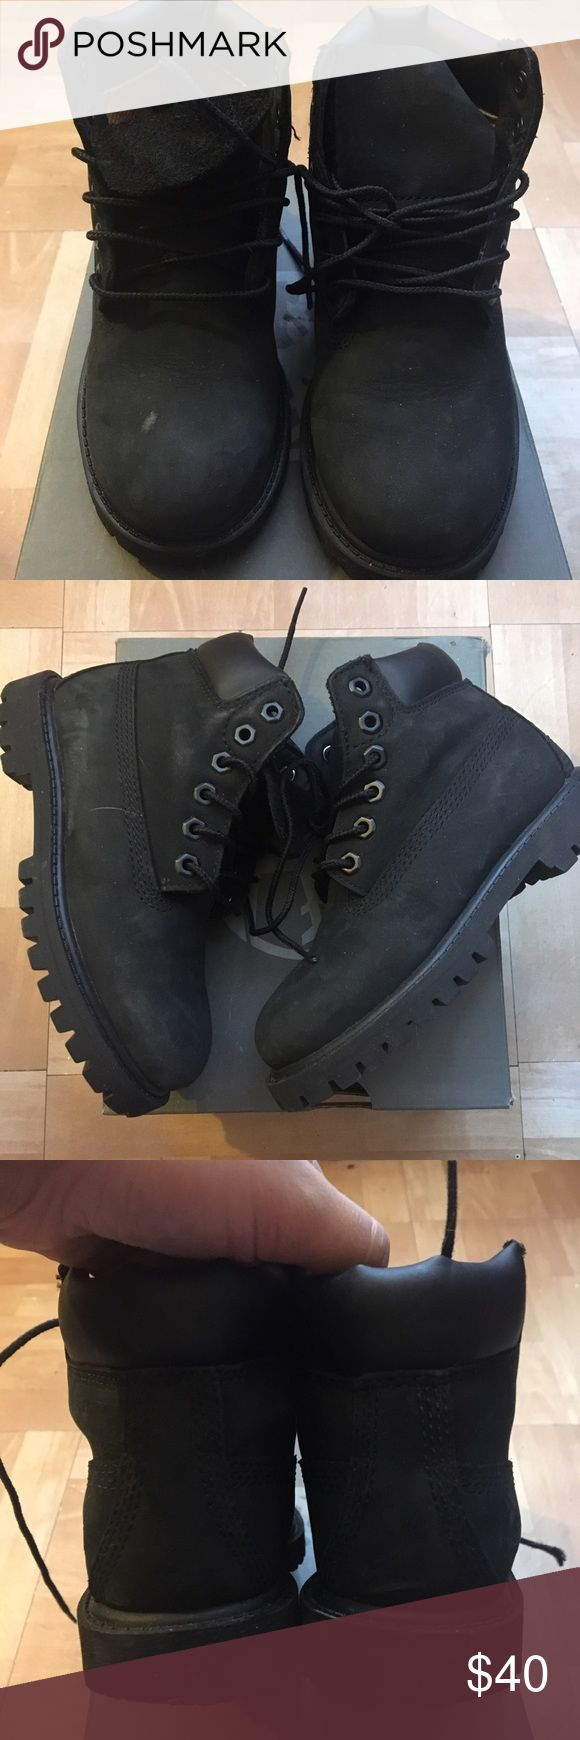 Boys timberland boots Good used condition small flaws Timberland Shoes Boots